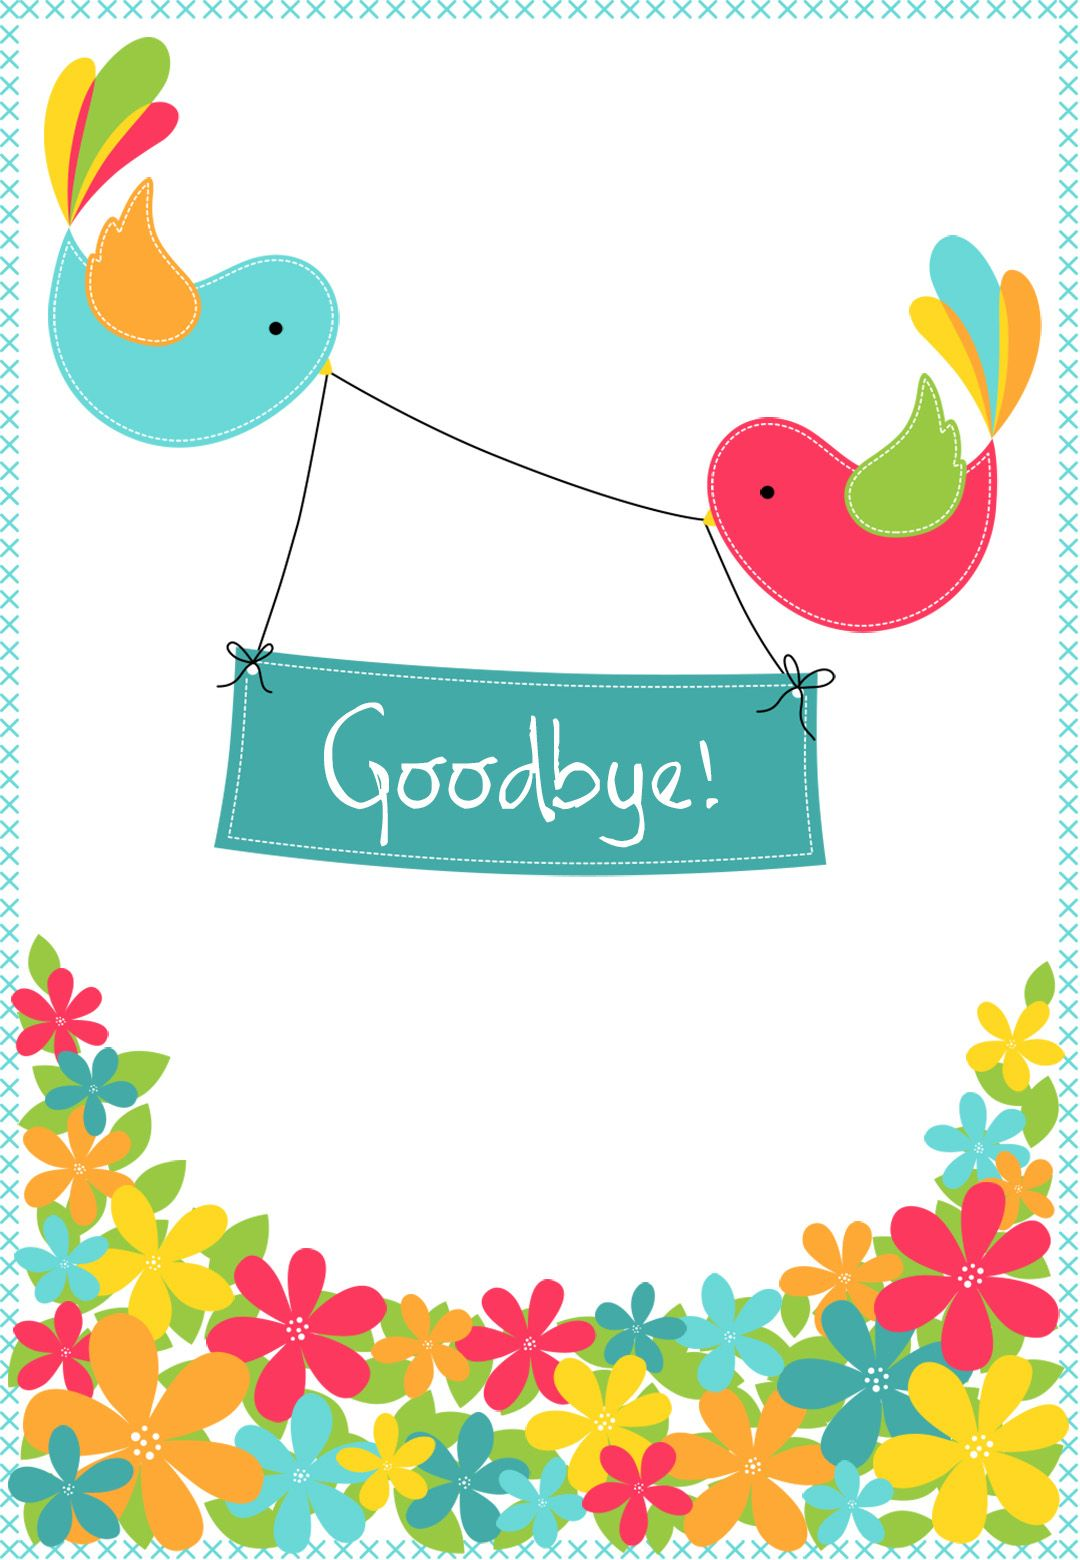 Goodbye From Your Colleagues Good Luck Card Free Intended For Goodbye Card Template Great Sample Templates In 2020 Good Luck Cards Goodbye Cards Farewell Cards